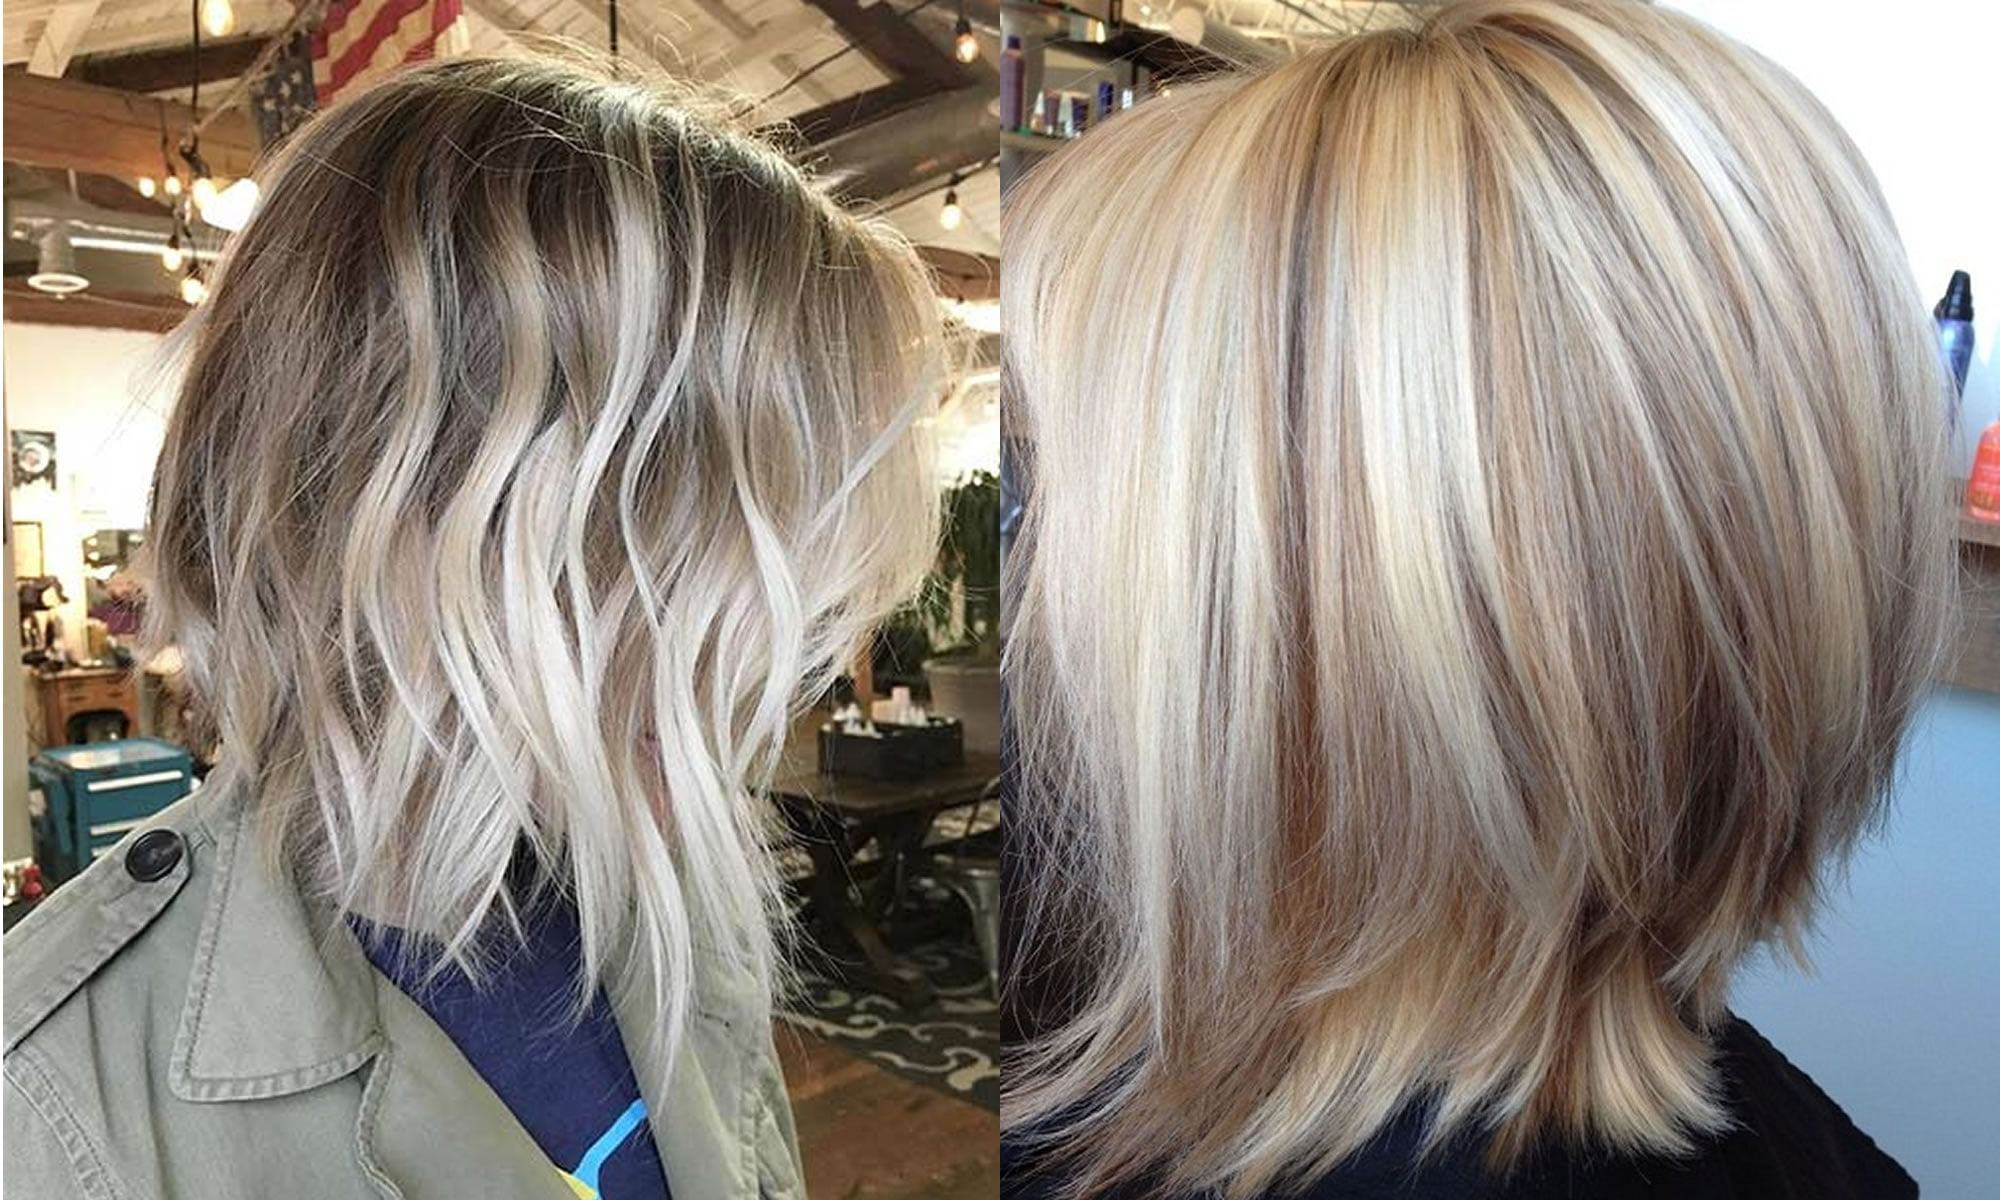 The Best 50 Balayage Bob Hairstyles (short+long Throughout Blonde Balayage Hairstyles On Short Hair (View 7 of 20)